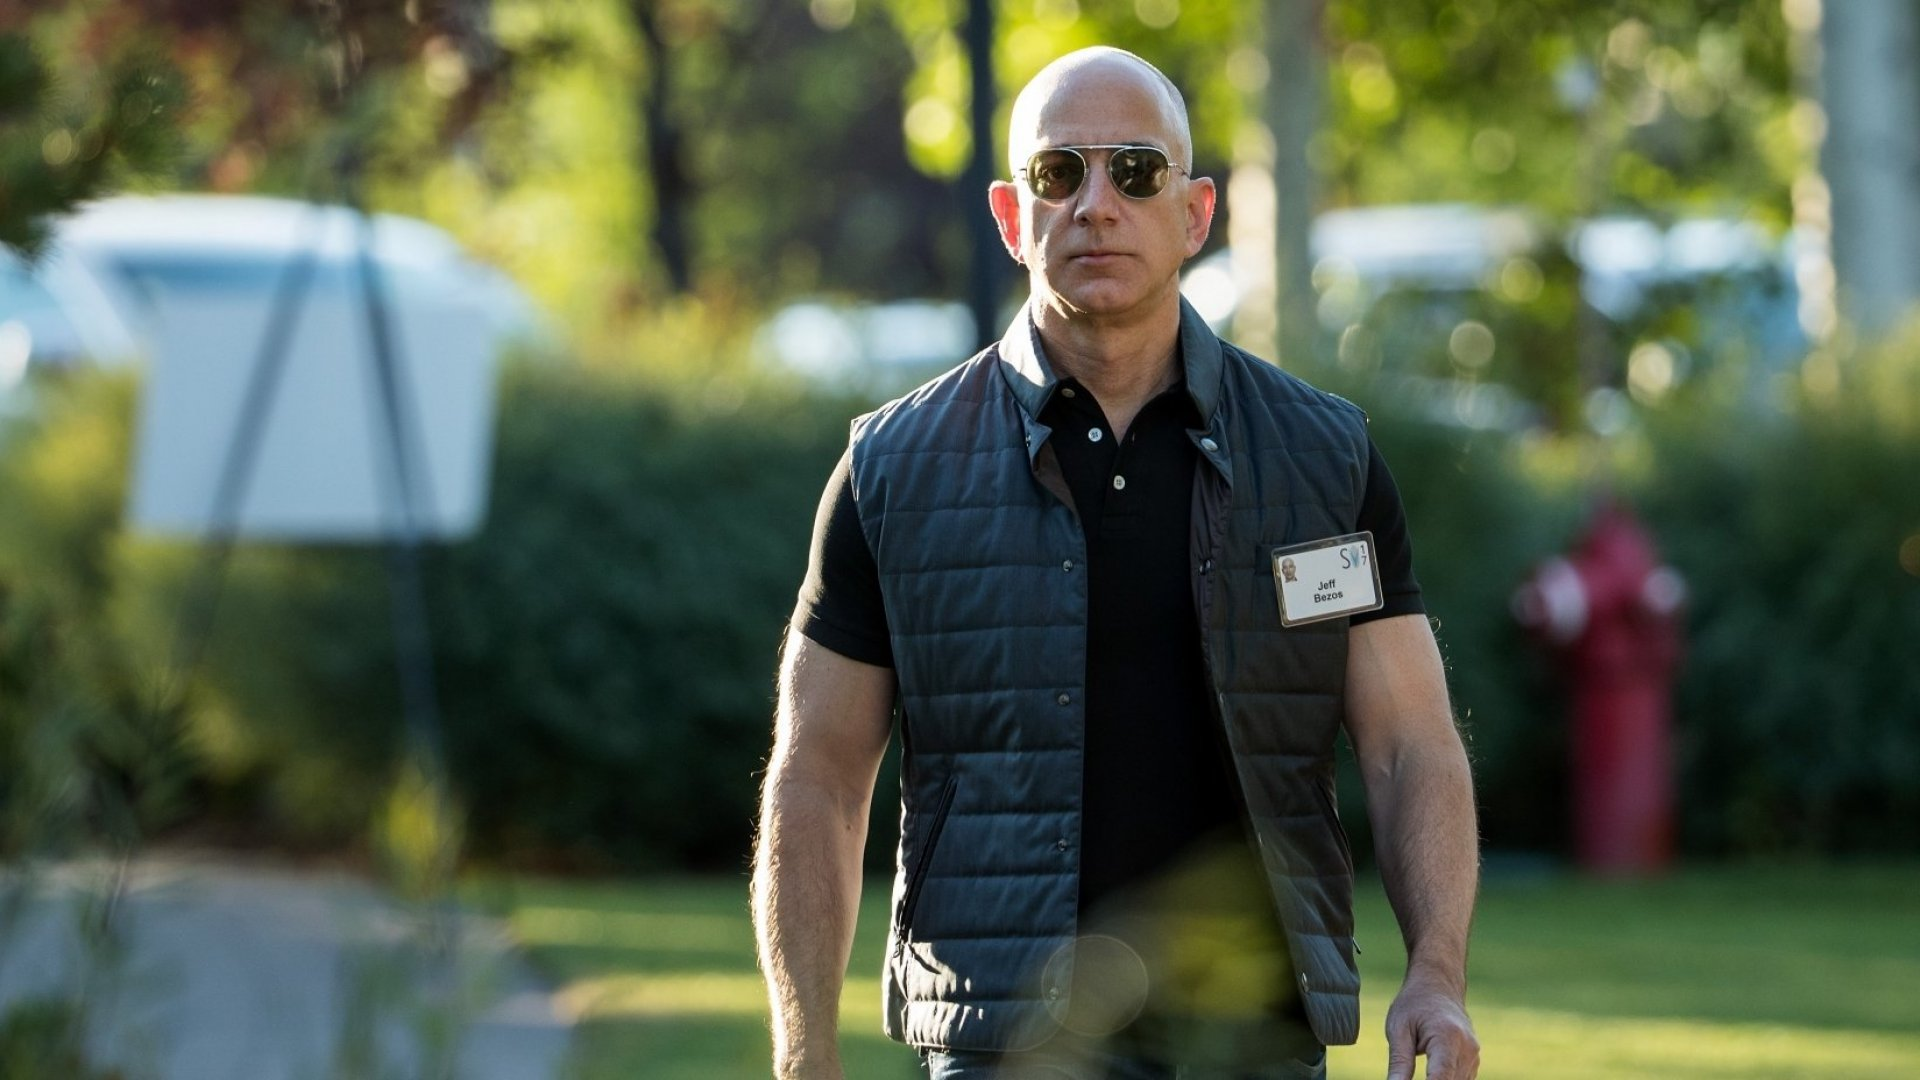 Jeff Bezos Just Revealed the ShockingEvent That Made Him Self-Reliant and Wildly Successful